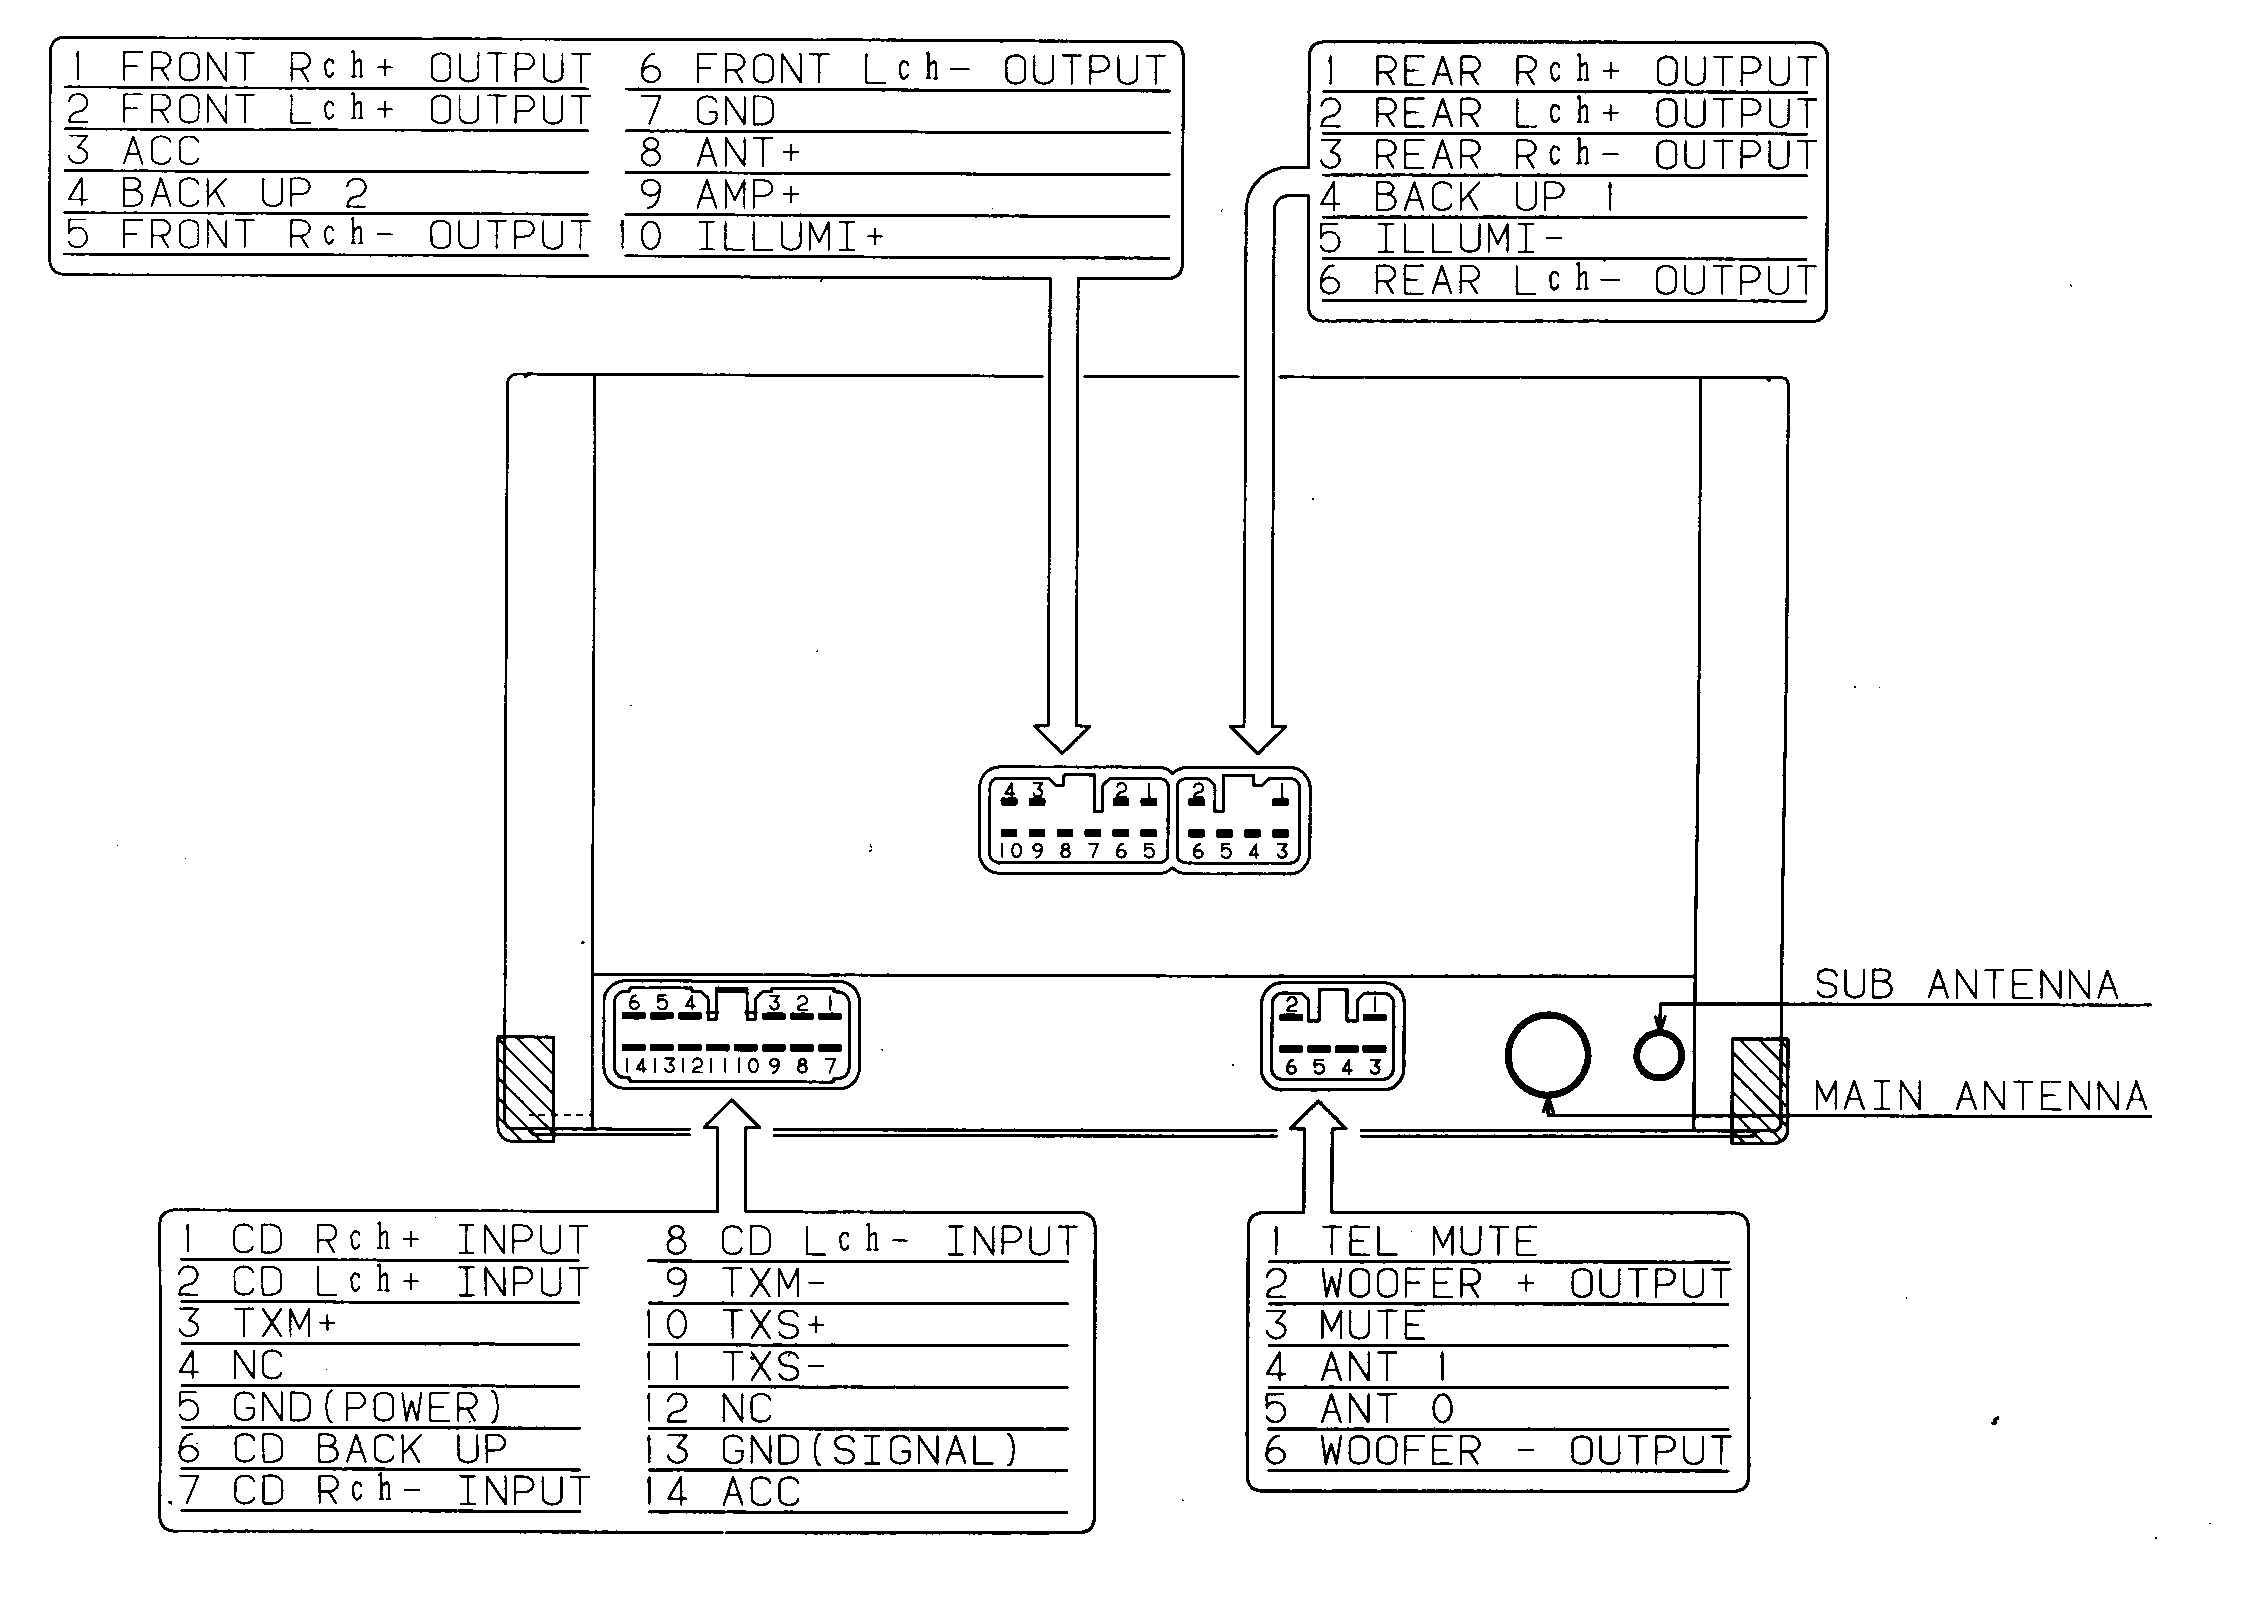 Lexus car stereo wiring diagram harness pinout connector wire connector wiring diagram gm wire connectors \u2022 free wiring diagrams hagstrom swede wiring diagram at soozxer.org